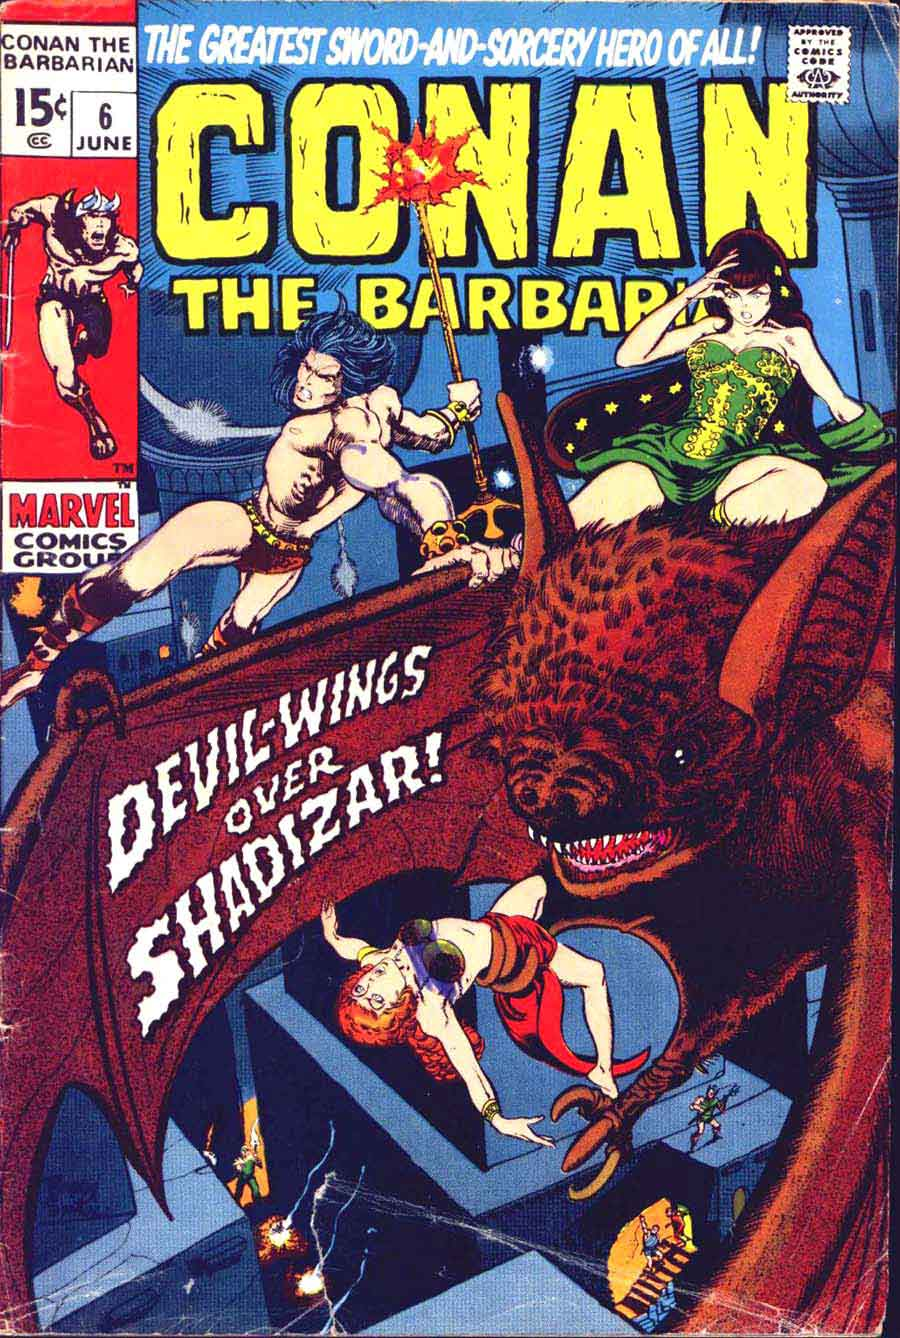 Conan the Barbarian v1 #6 marvel comic book cover art by Barry Windsor Smith